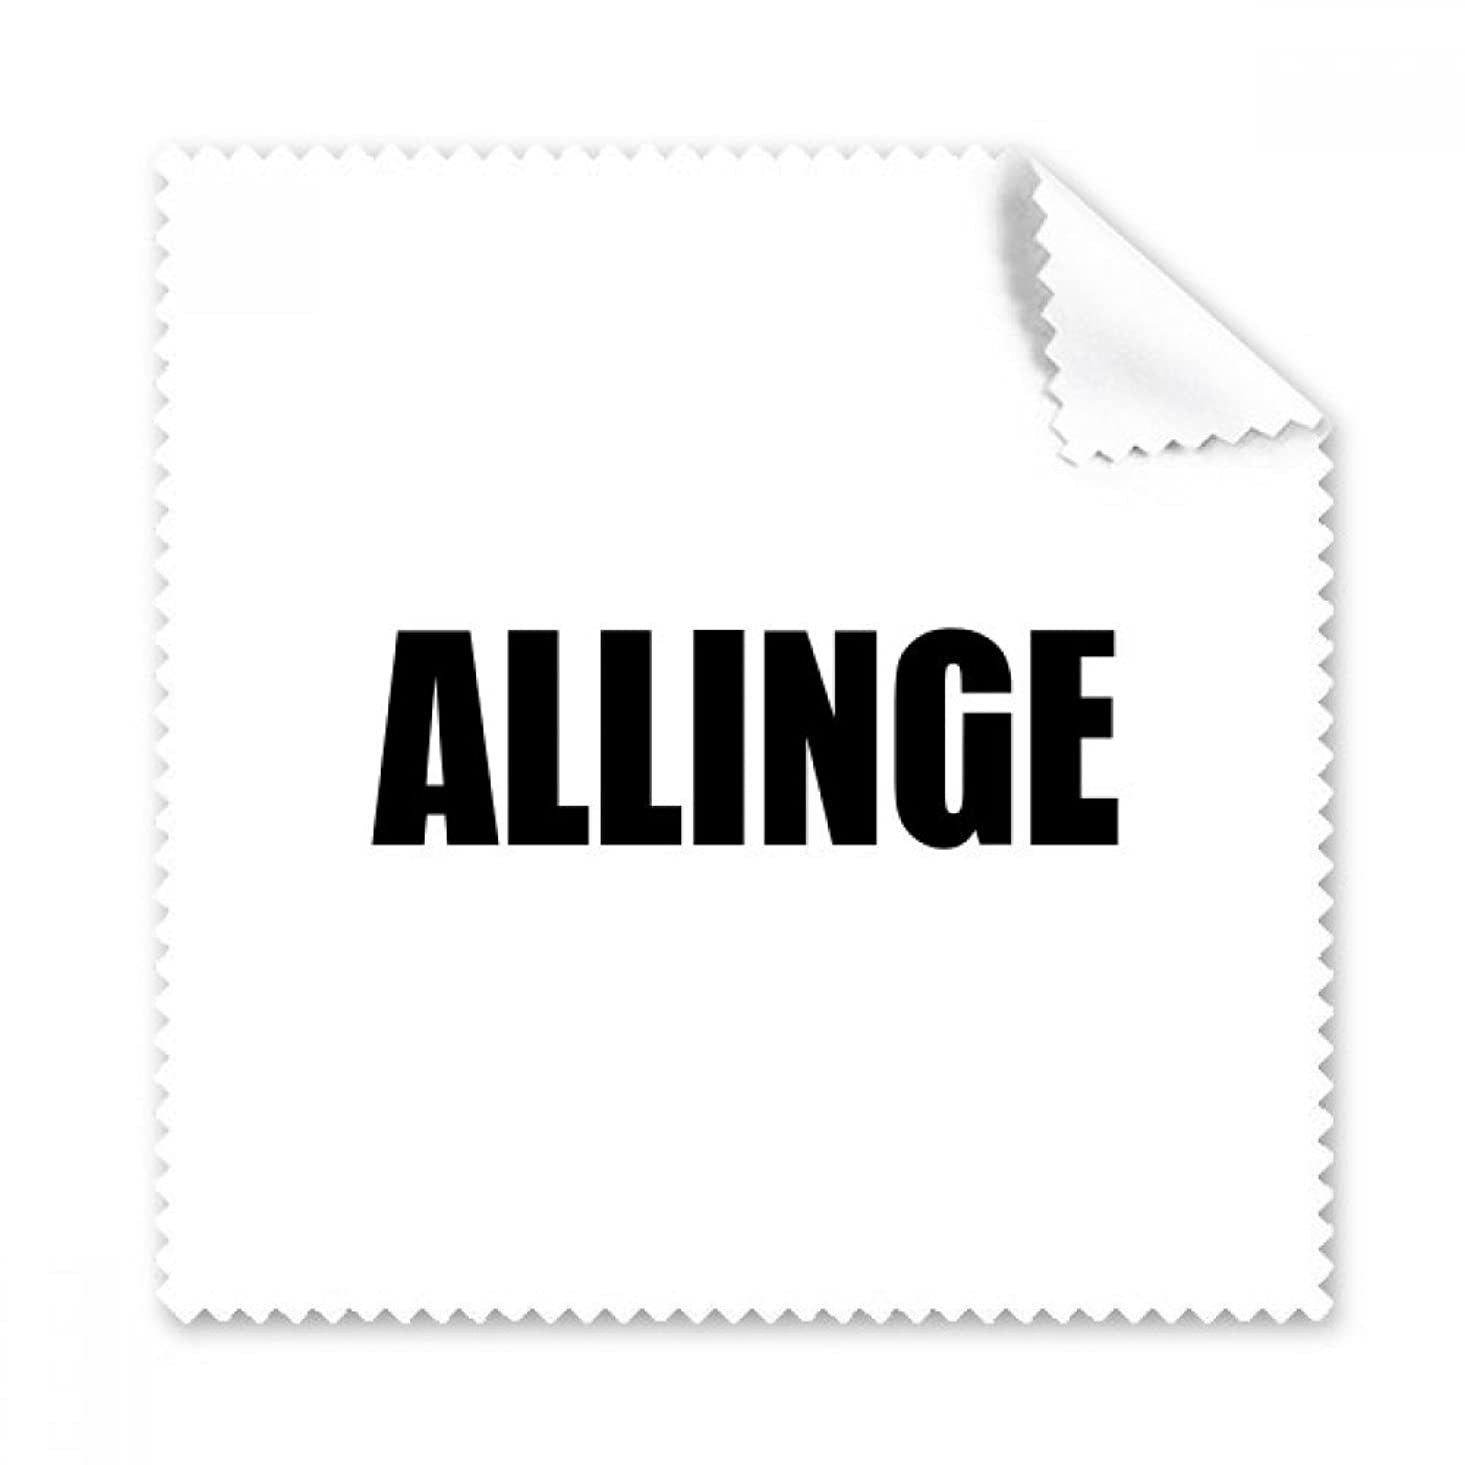 Allinge Denmark City Name Glasses Cloth Cleaning Cloth Phone Screen Cleaner 5pcs Gift cblhm582634